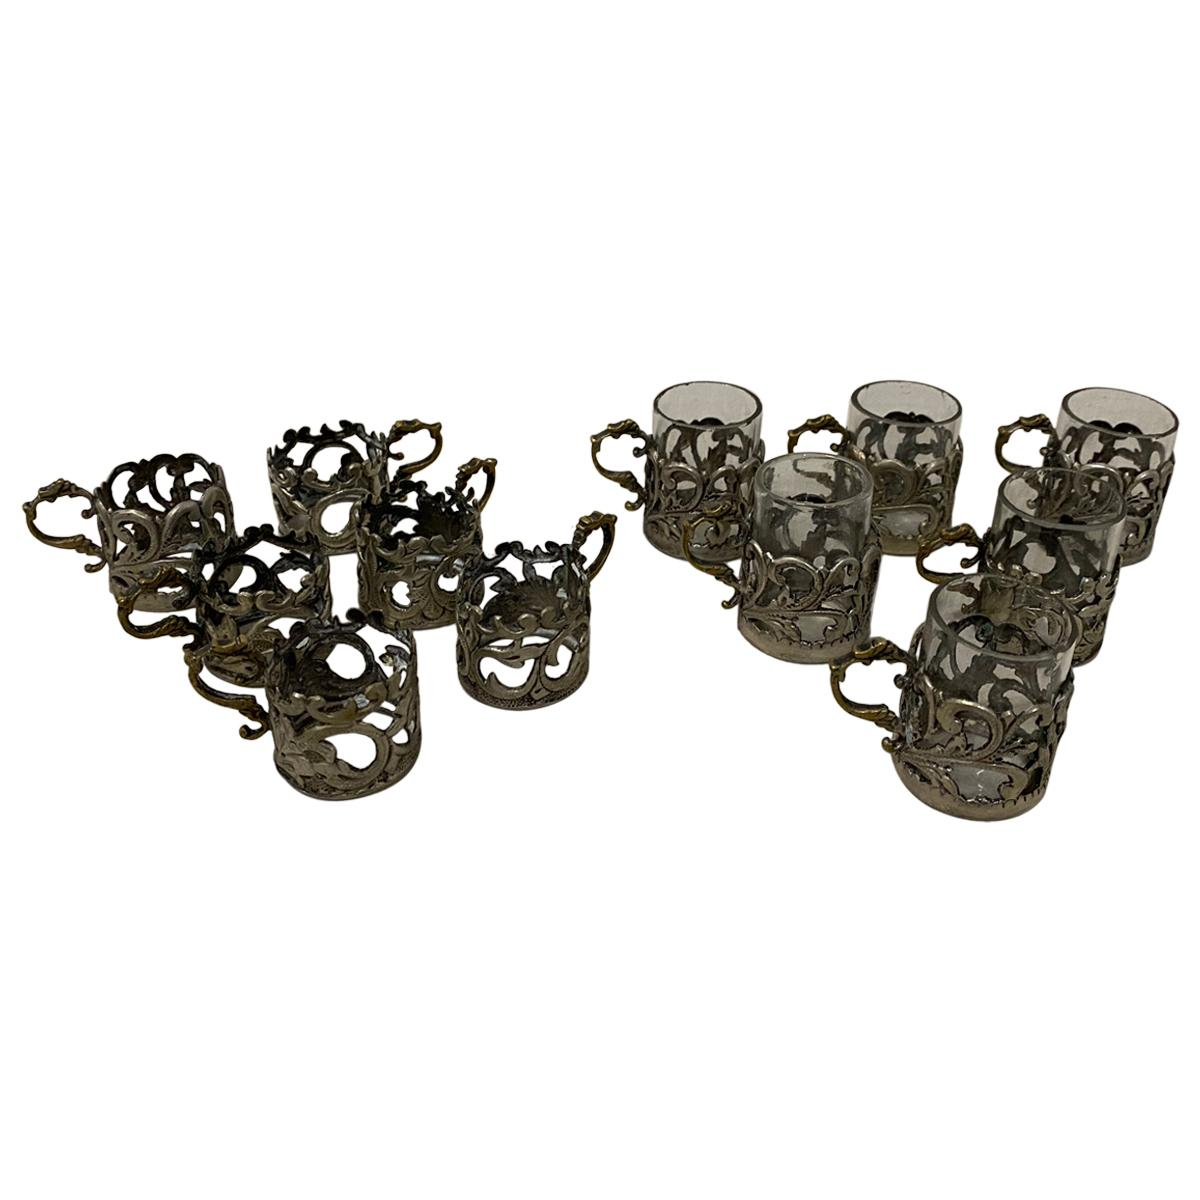 19th Century Miniature Sterling Silver Liquor Cup Holders with Glass Inserts